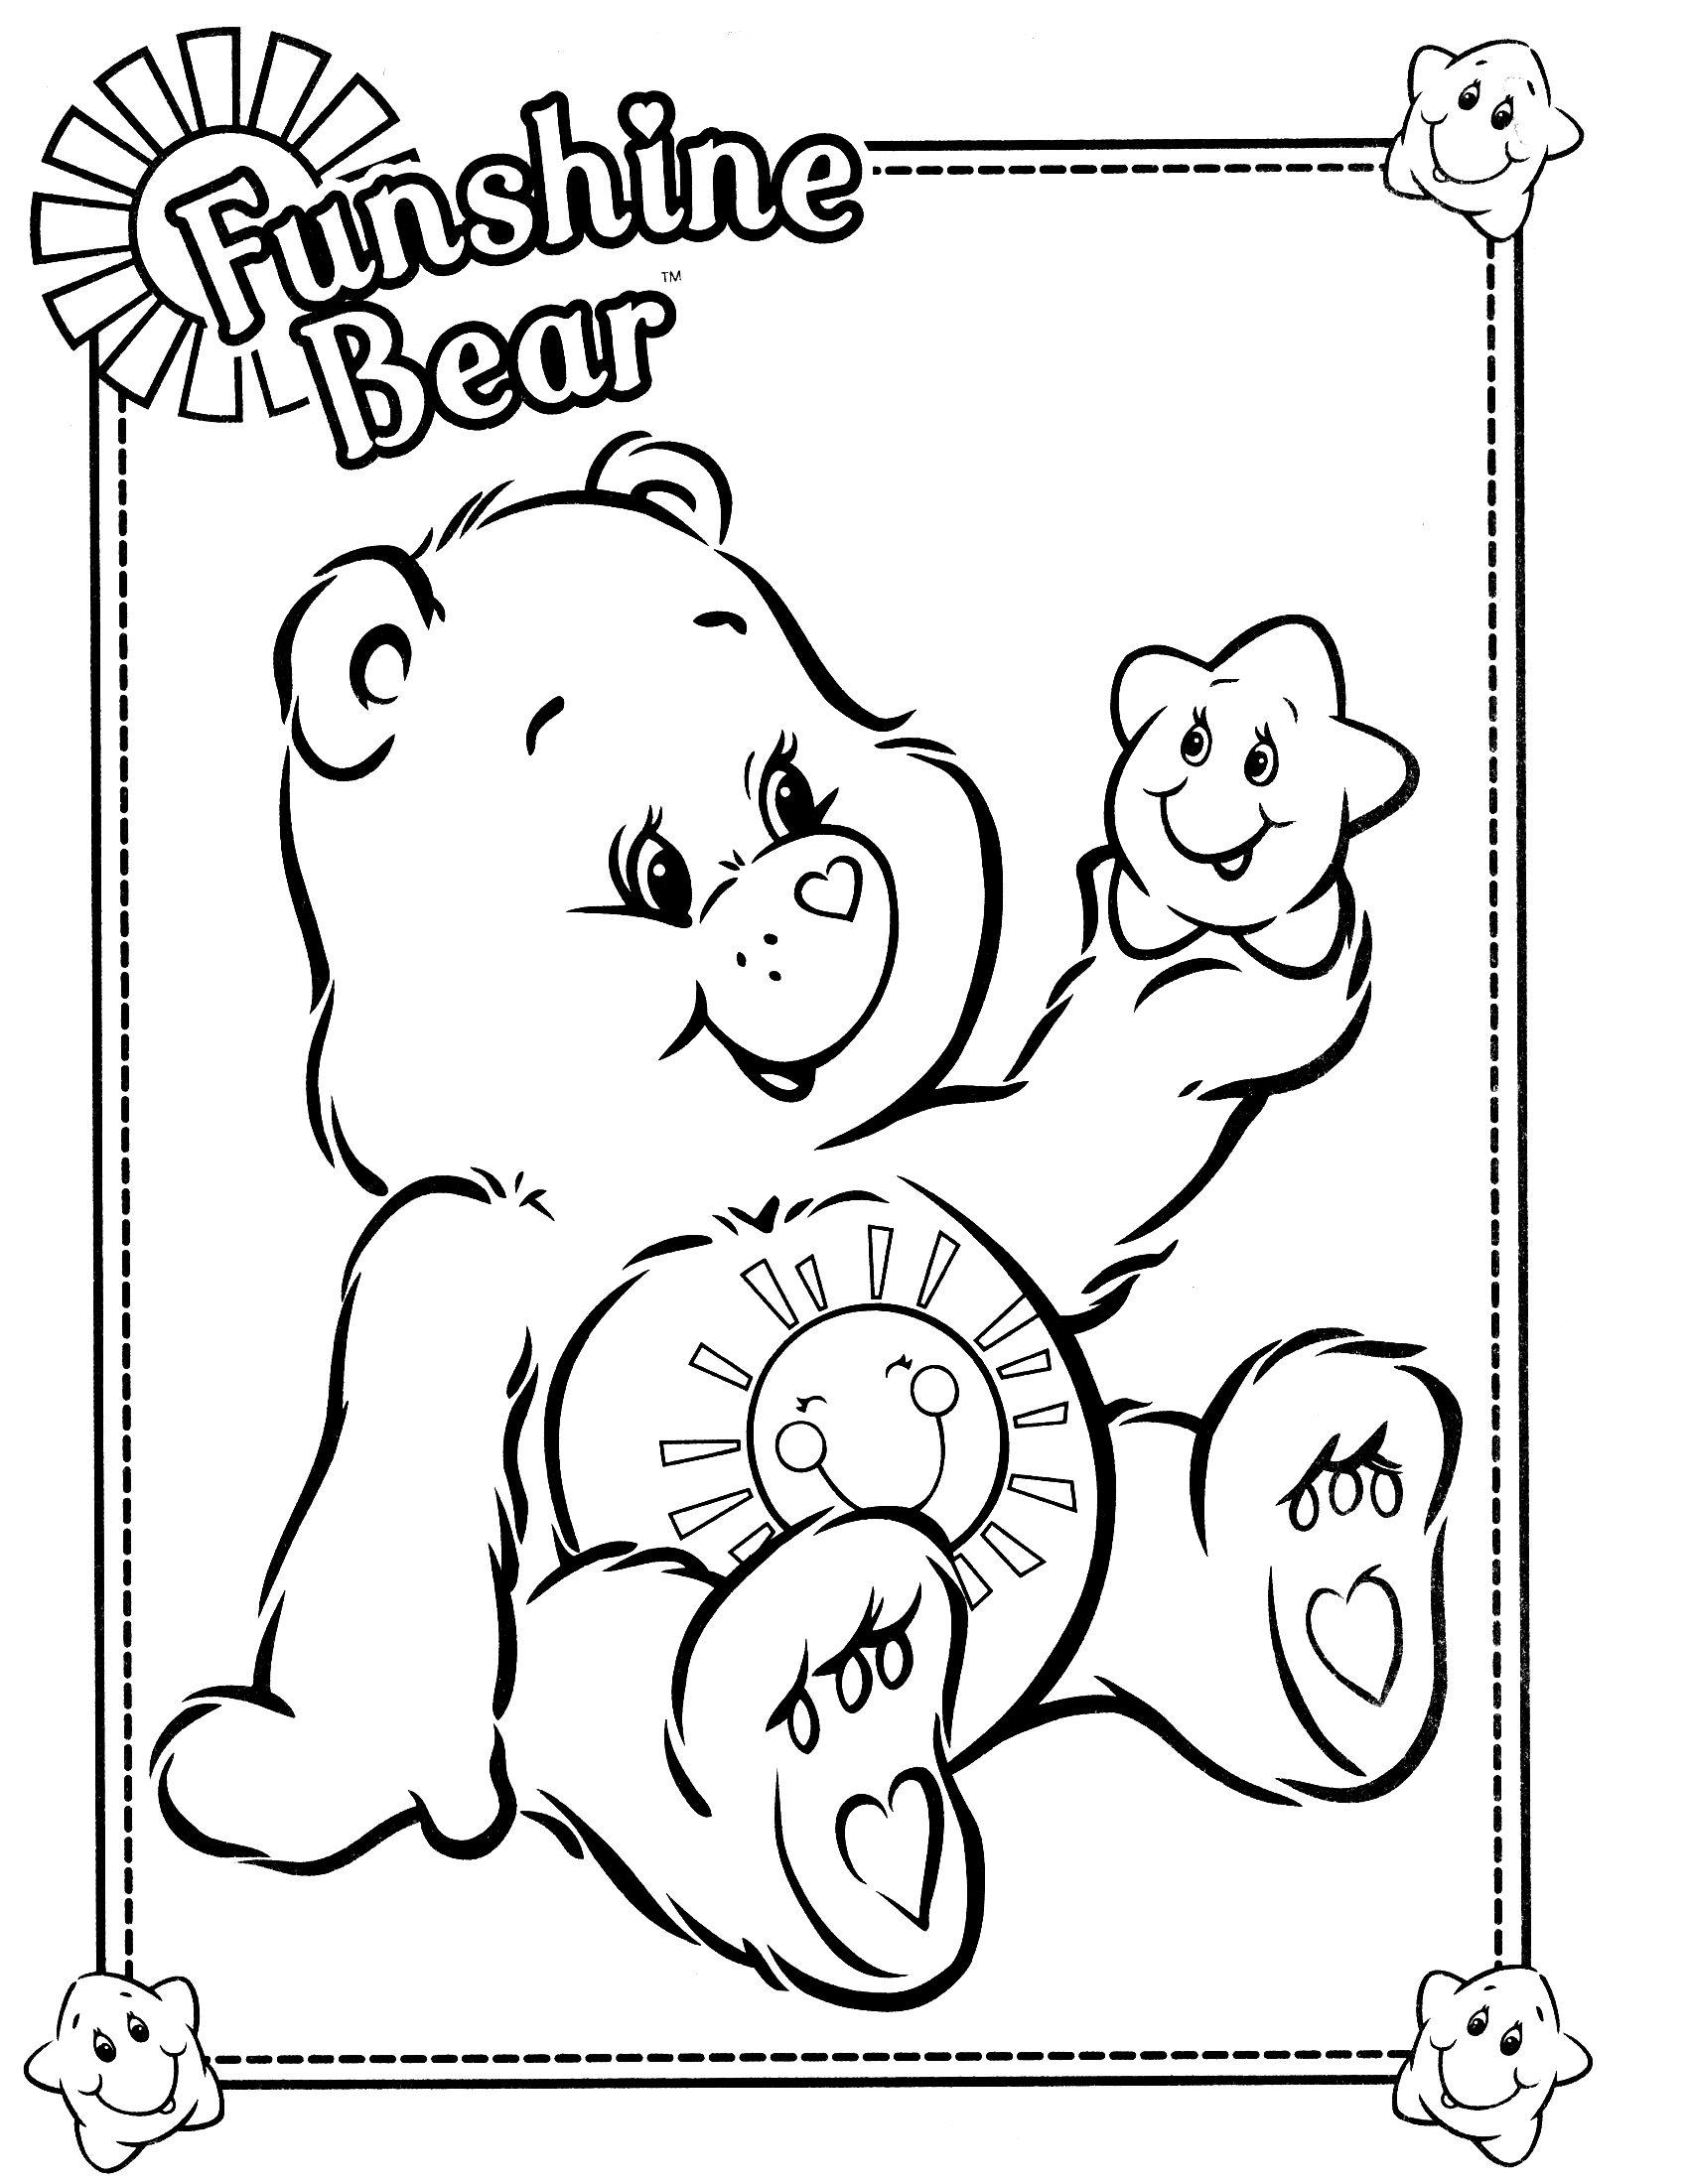 grumpy care bears coloring pages - photo#9